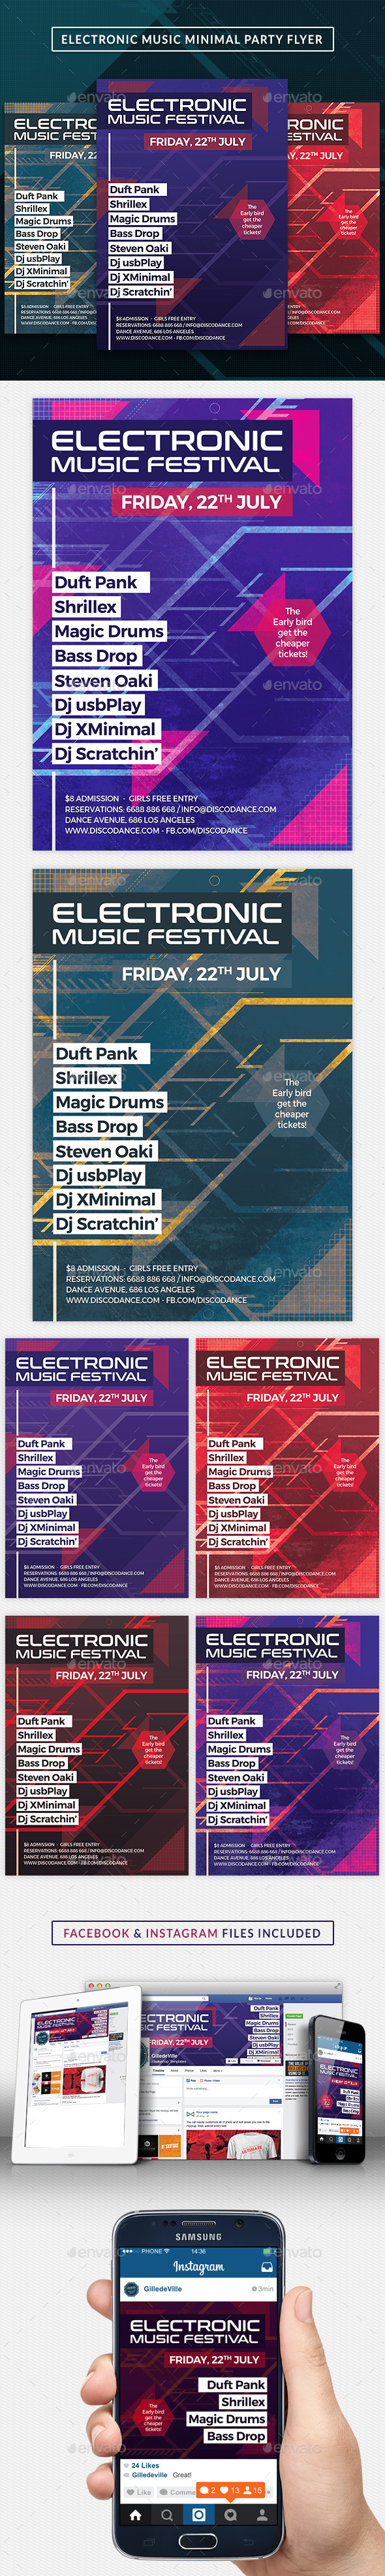 Electro Music DJ Minimal Party Flyer Template - Clubs & Parties Events